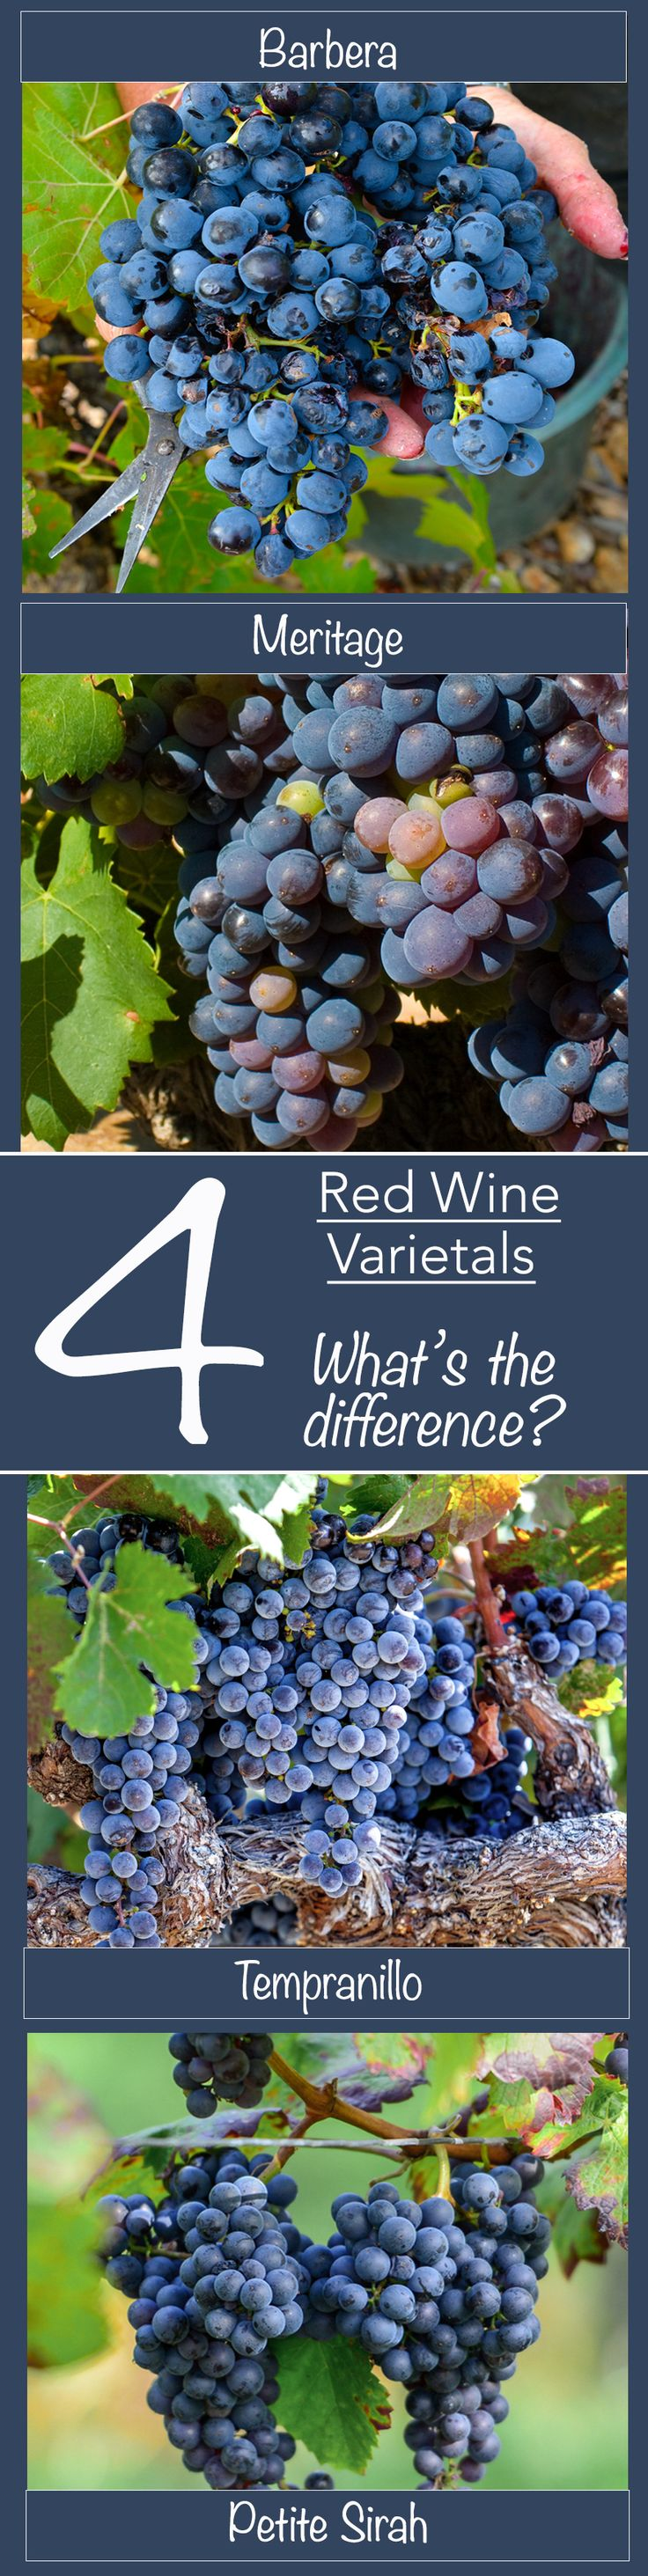 Do you know the difference? | Red Wine | Wine | Gold Medal Wine Club | Wine Varietals | Barbera | Meritage | Tempranillo | Petite Sirah |